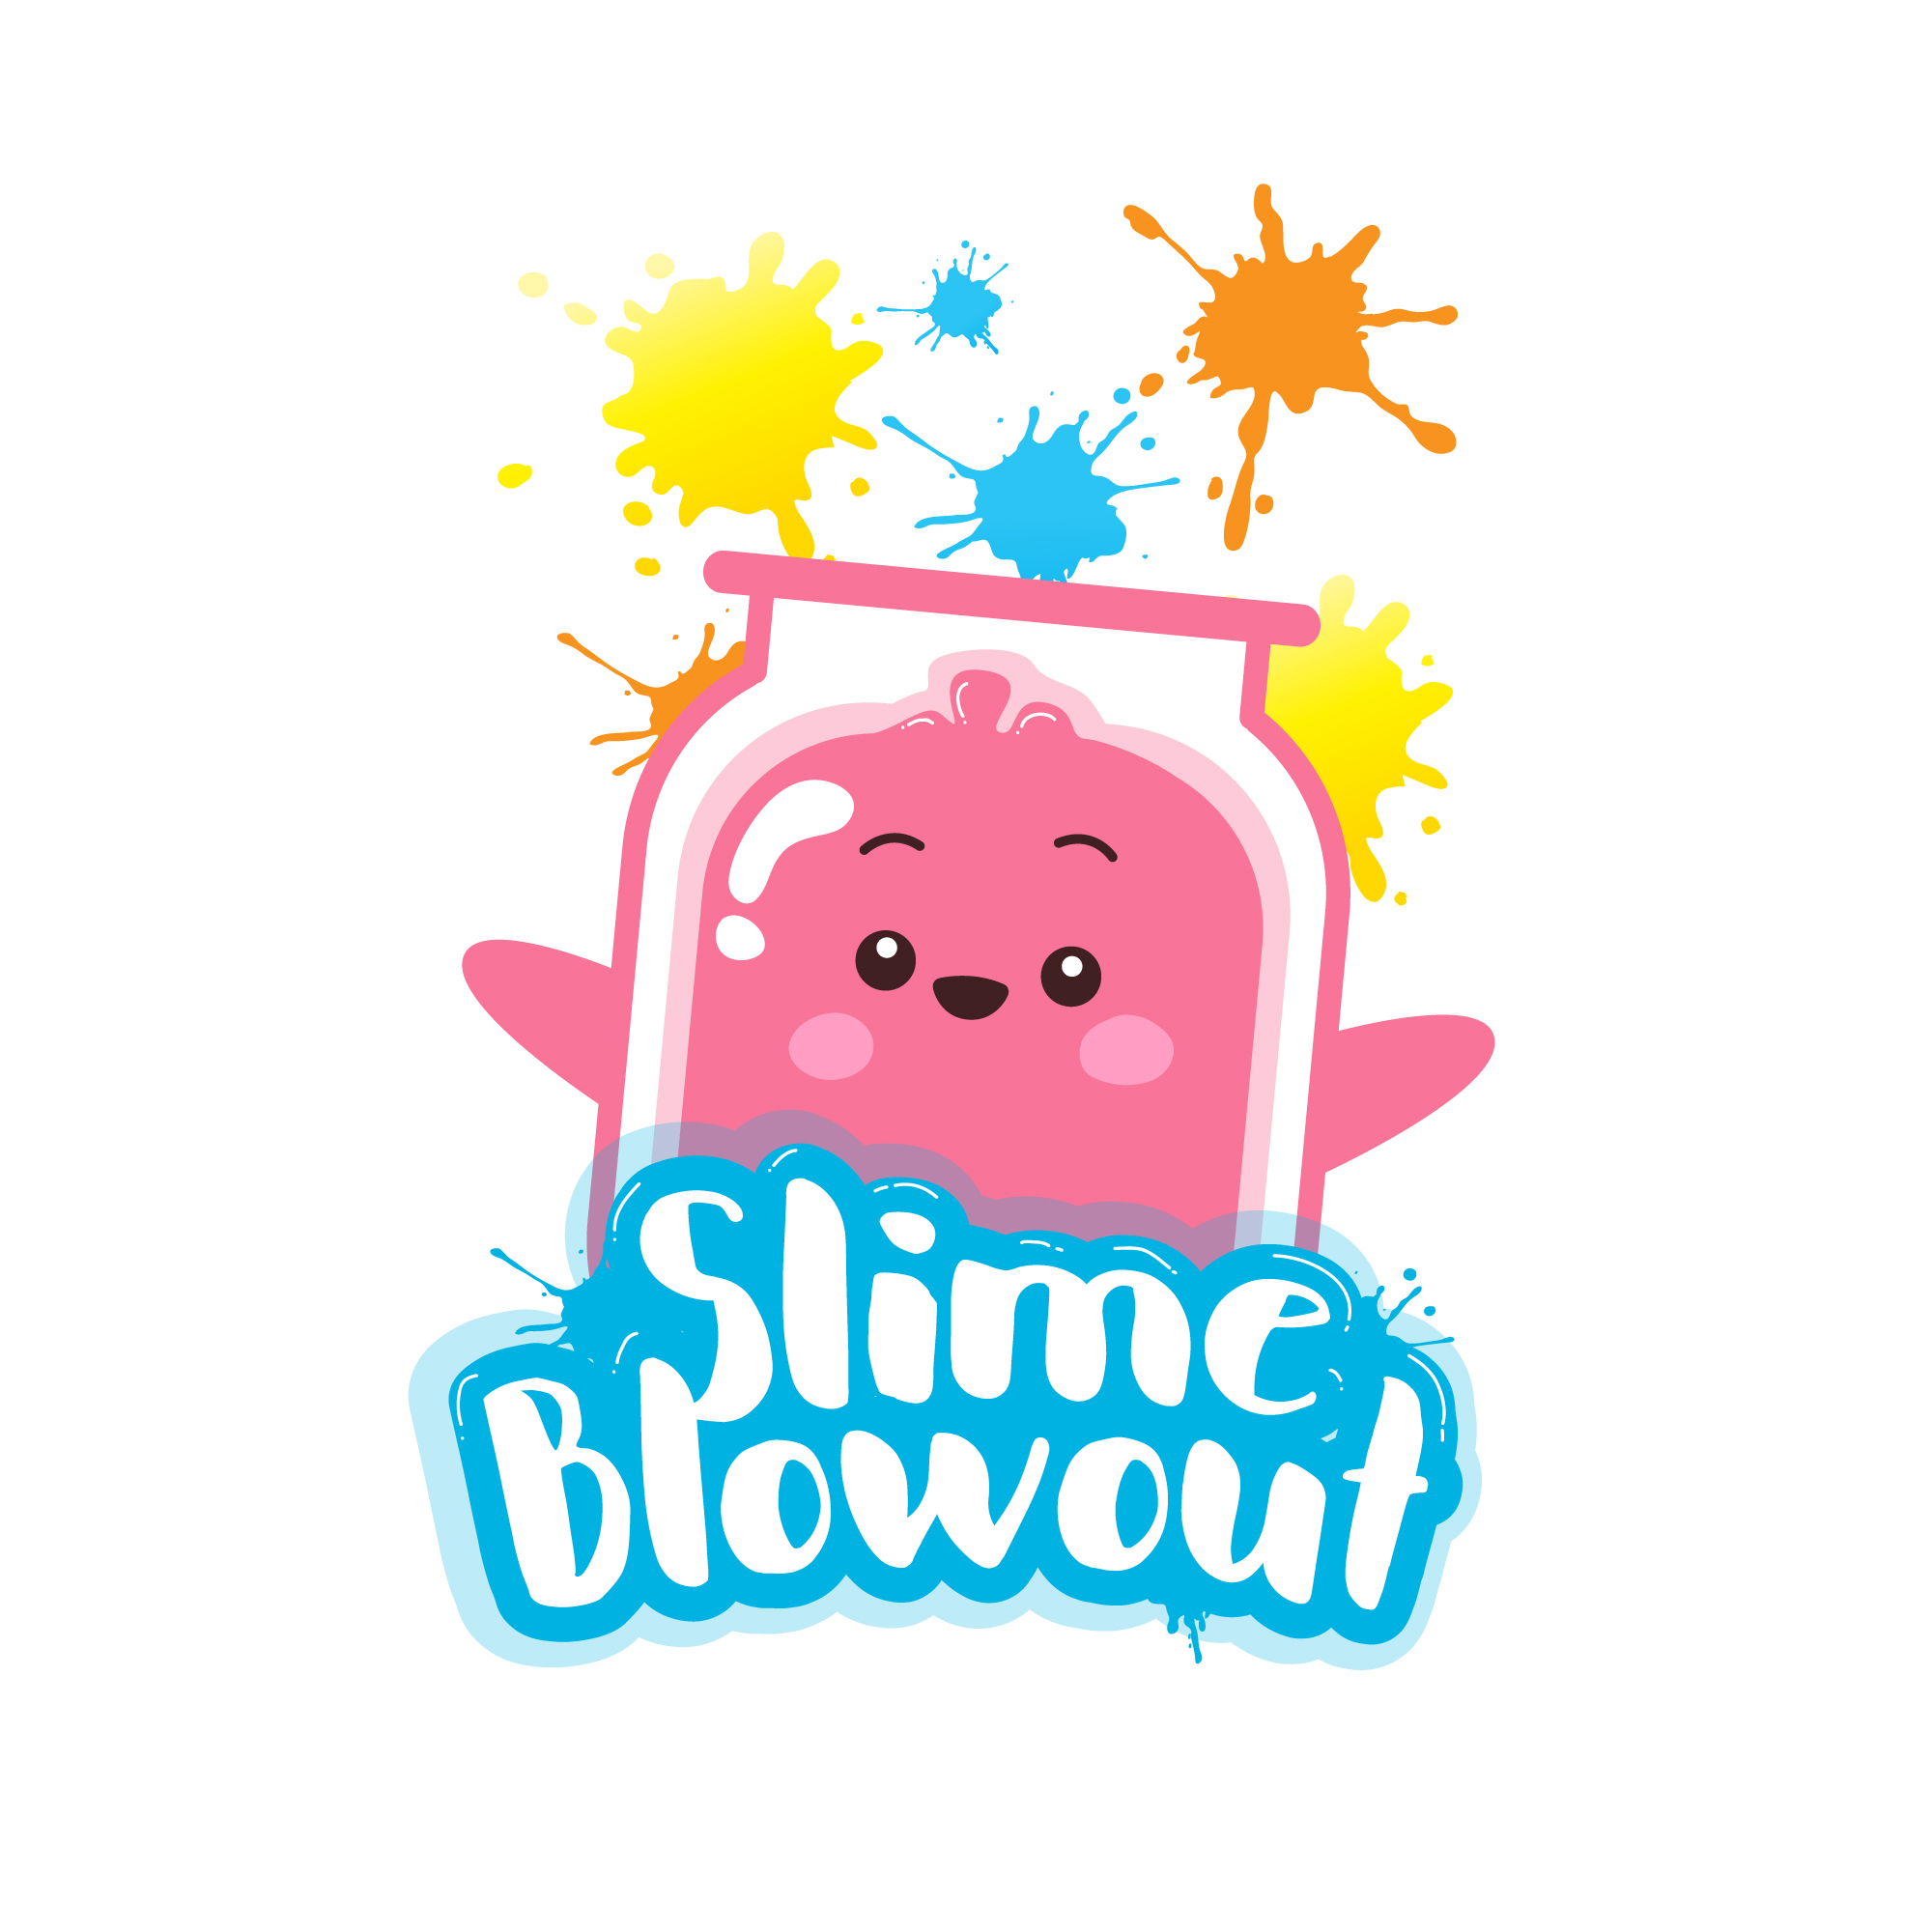 slime blowout